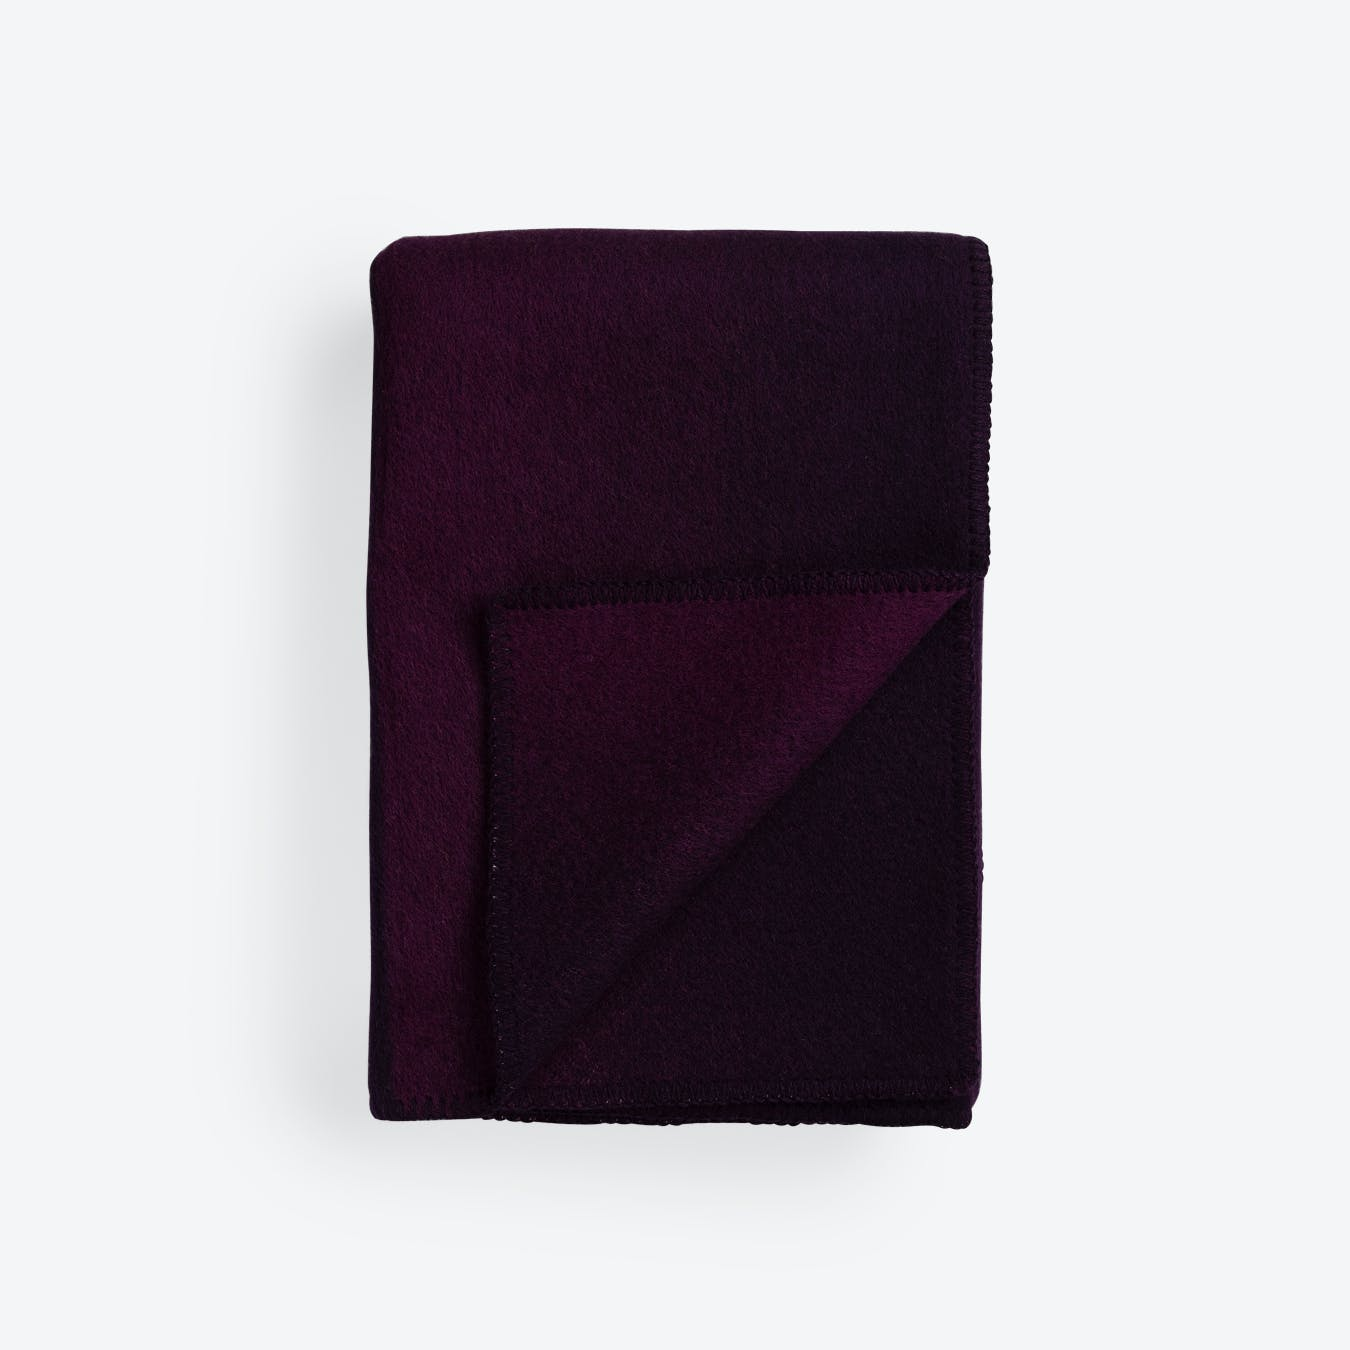 Berg Lambswool Throw in Violet